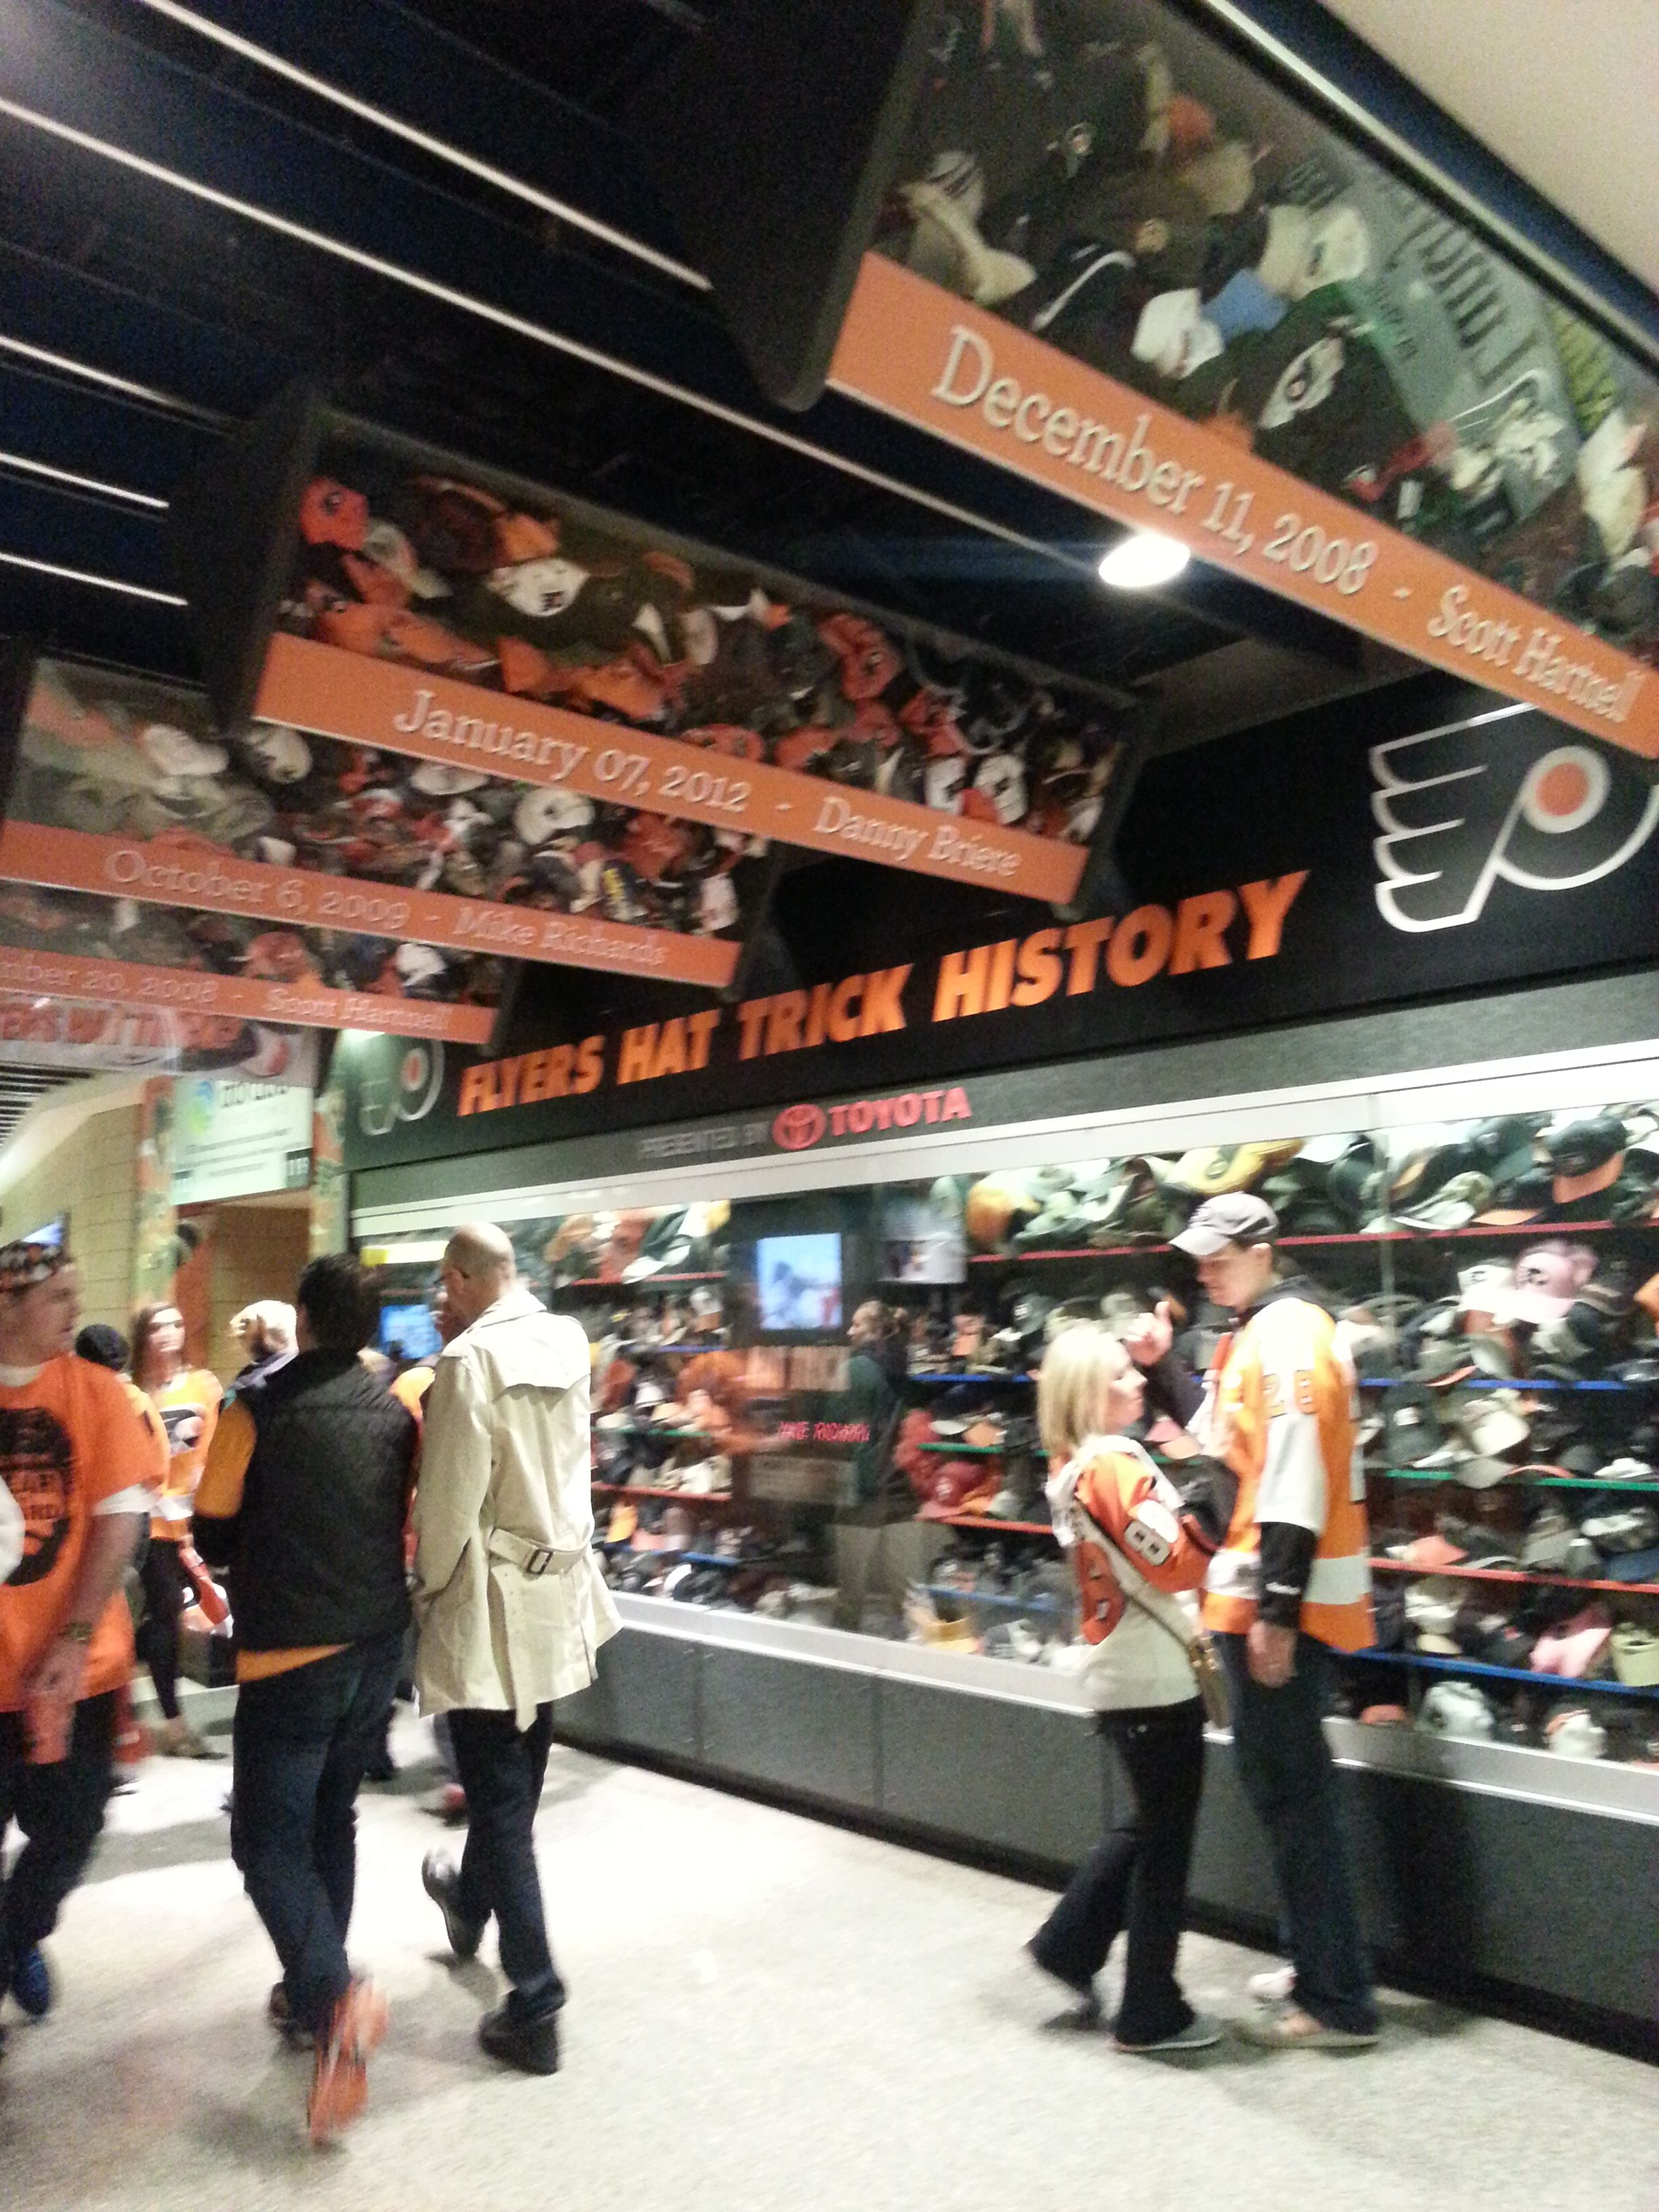 e5c7c67f673c64 Hat Trick Display at the Wells Fargo Center in Philadelphia, PA. Let's Go  Flyers!